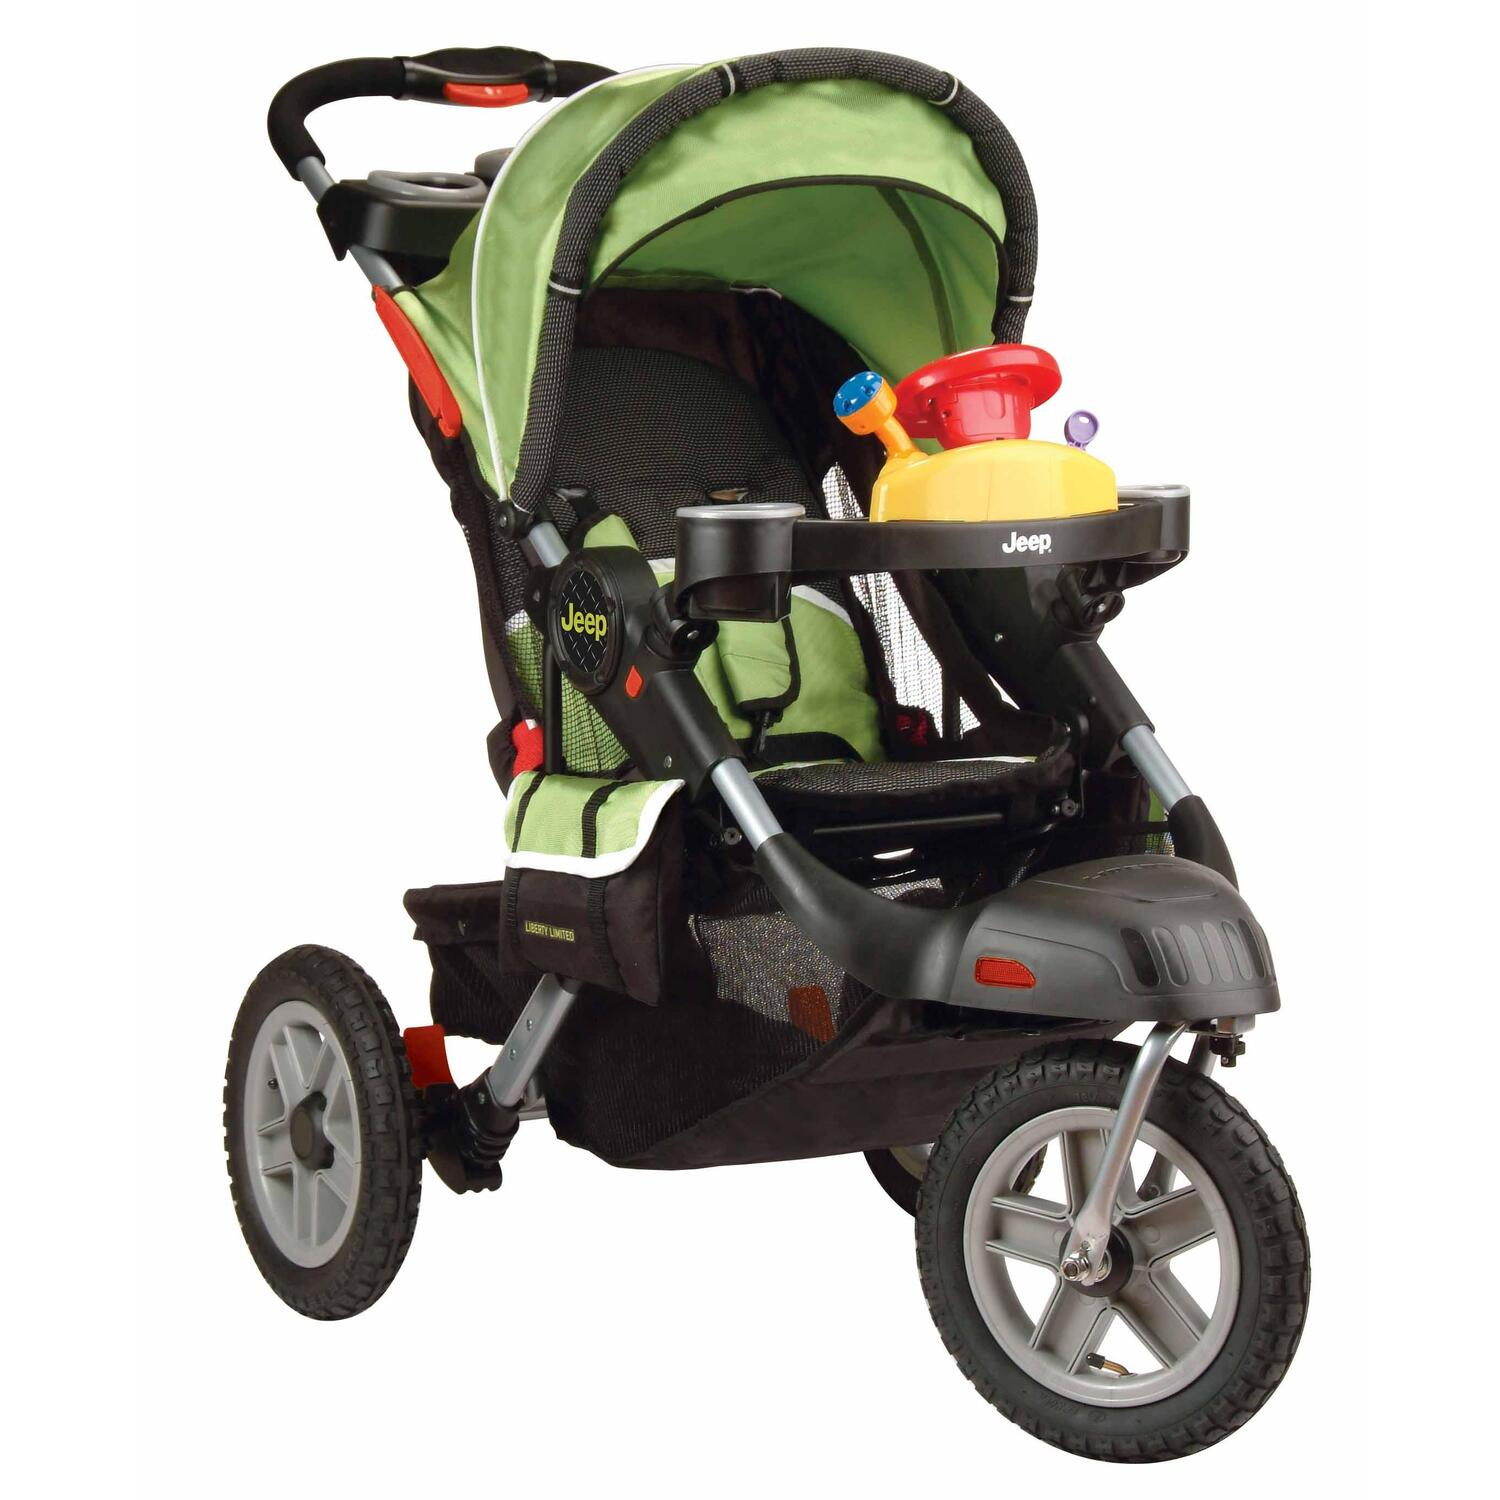 Jeep Liberty Limited Urban Terrain Stroller - Spark